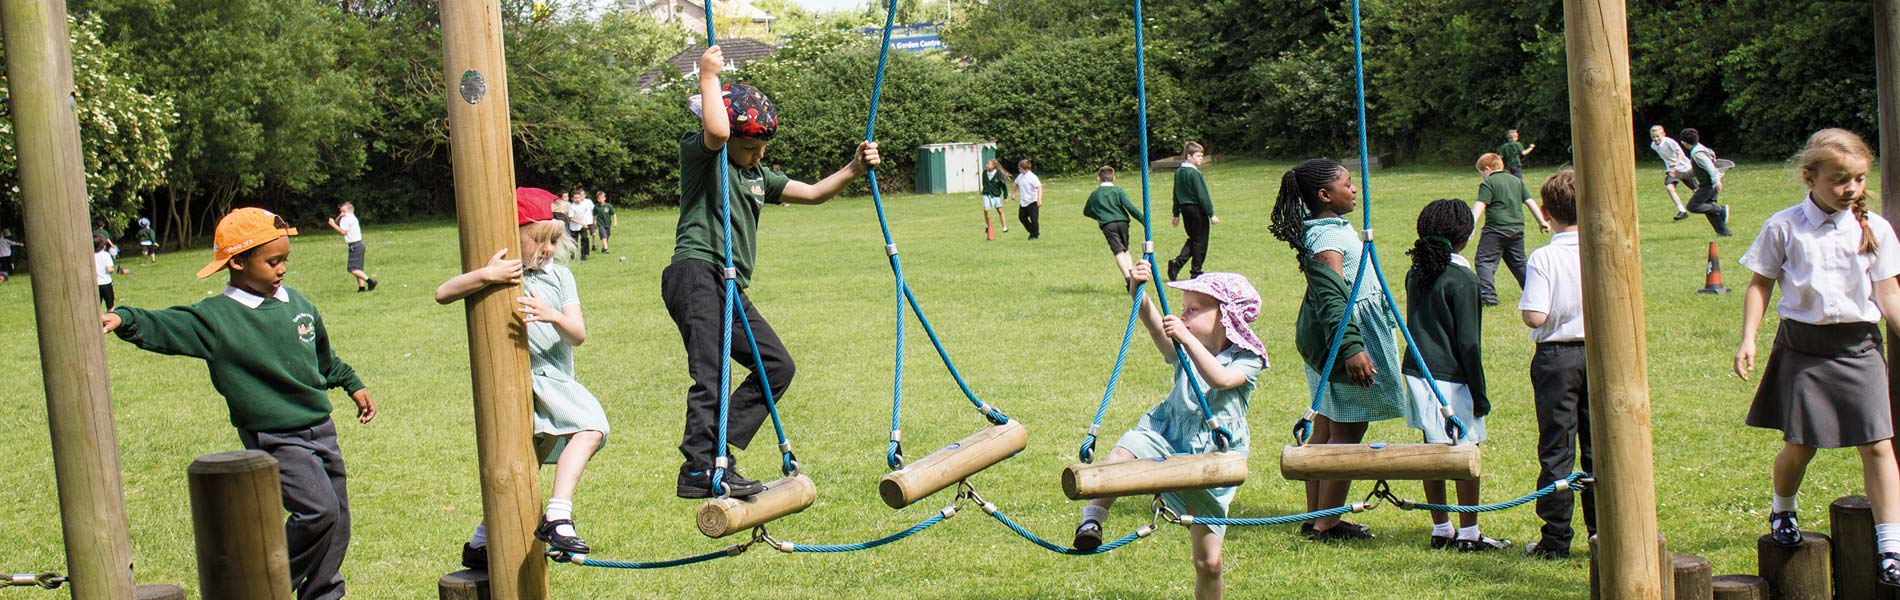 Children playing on wooden frame at corby old village primary school